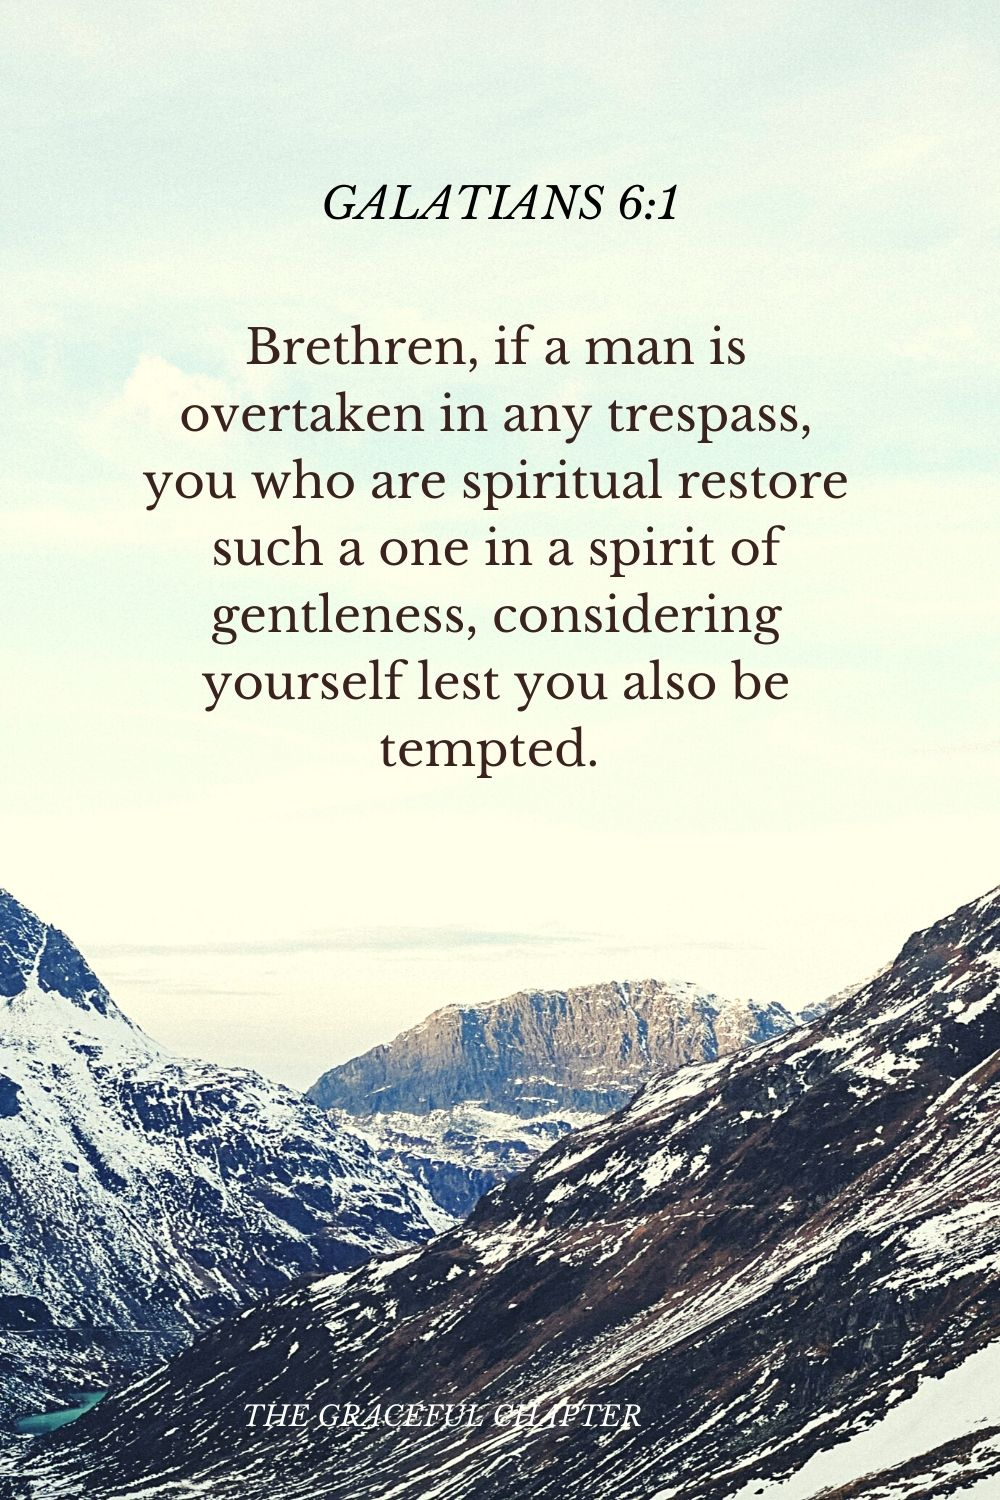 Brethren, if a man is overtaken in any trespass, you who are spiritual restore such a one in a spirit of gentleness, considering yourself lest you also be tempted.  Galatians 6:1